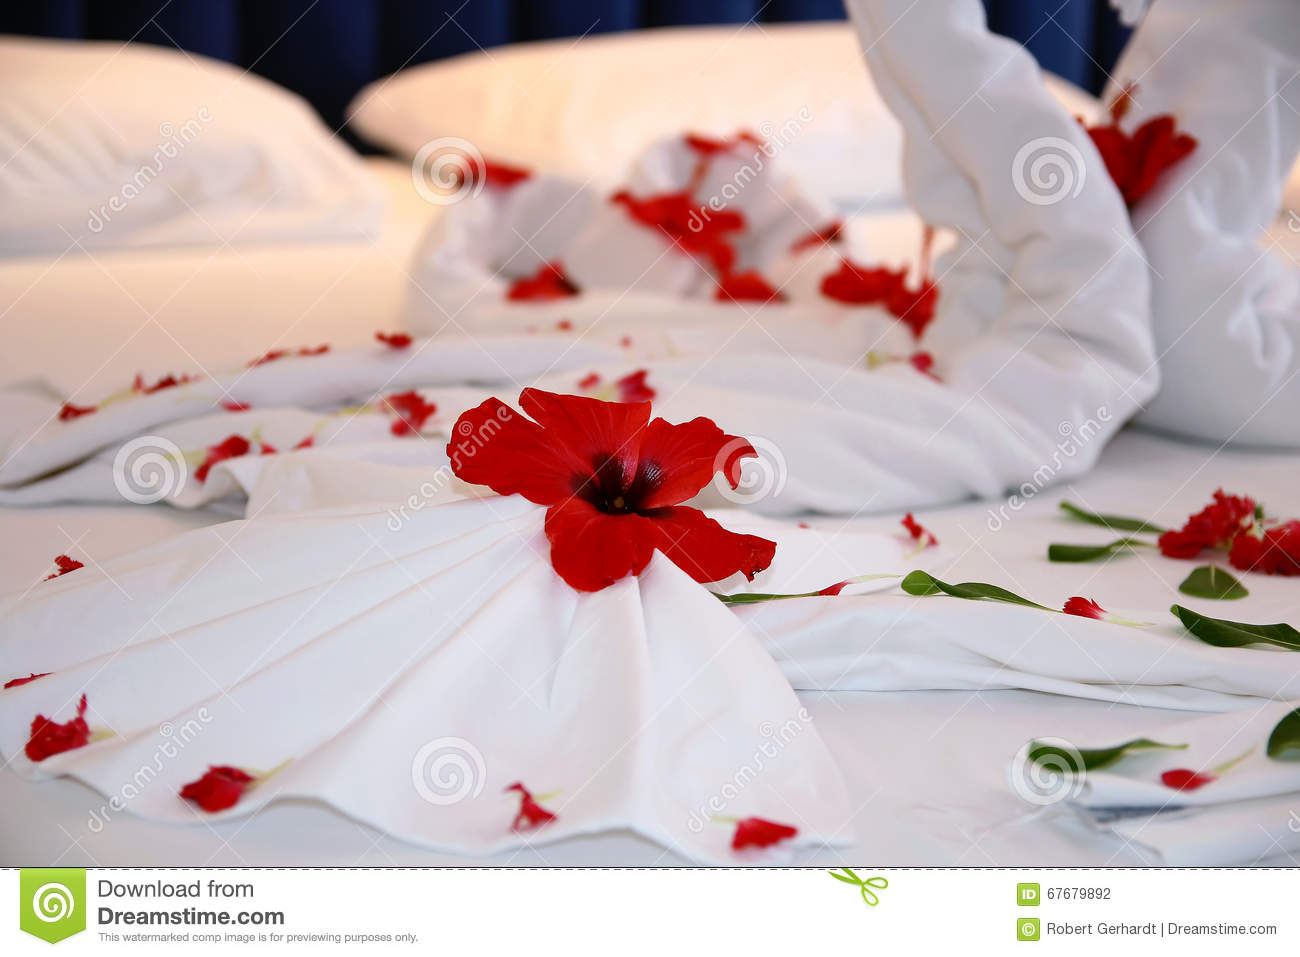 Honeymoon Bed Flower Decoration